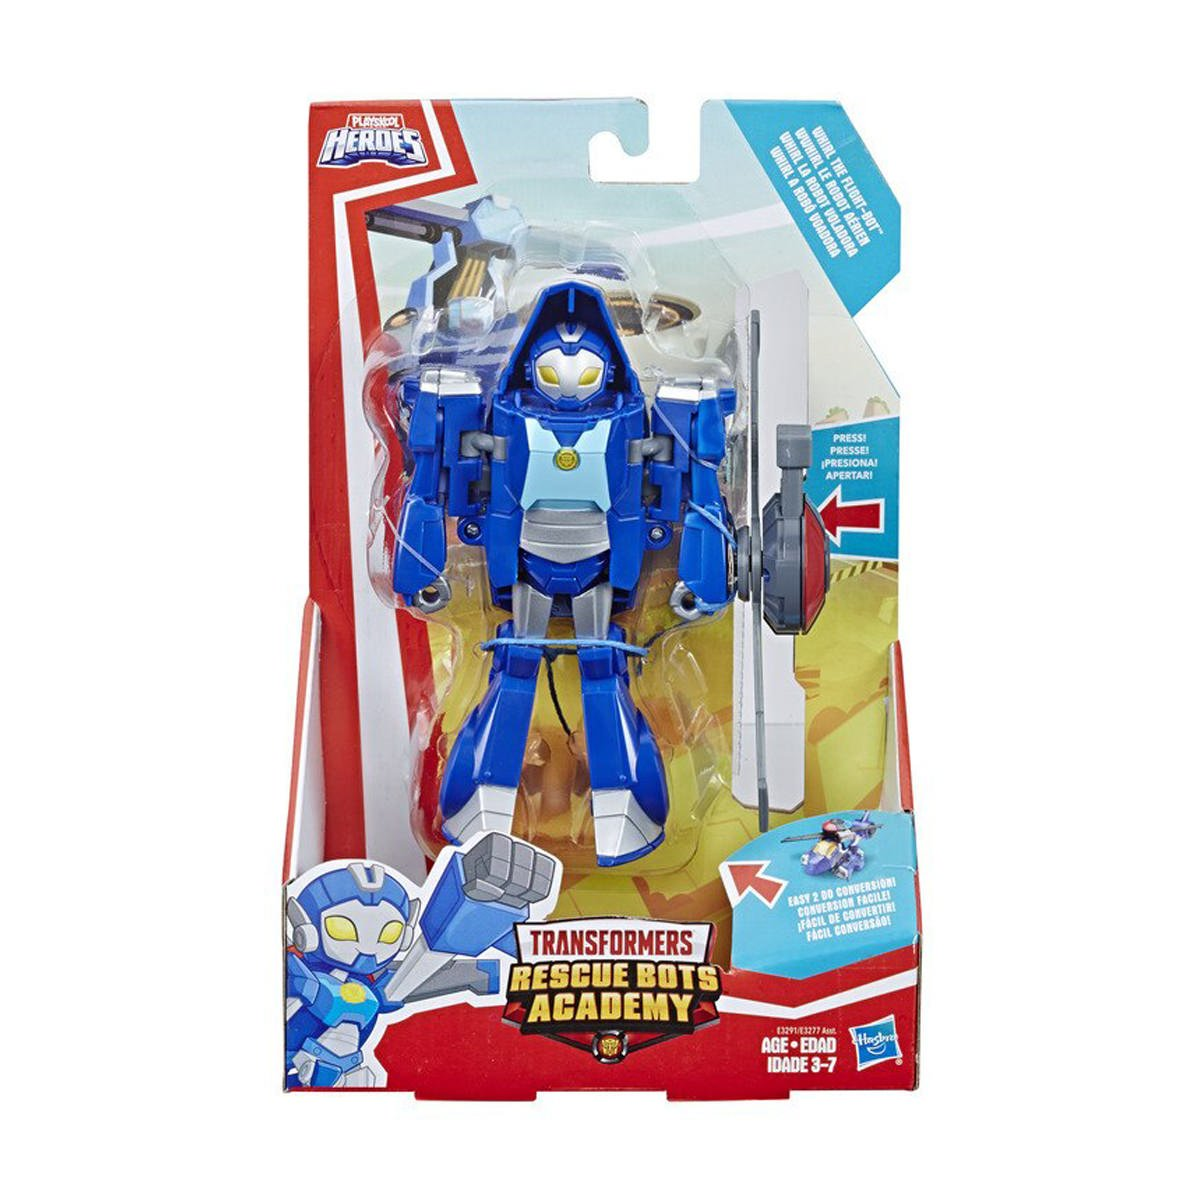 Figurina Transformers Rescue Bots Academy, Whirl The Flight Bot, E3291